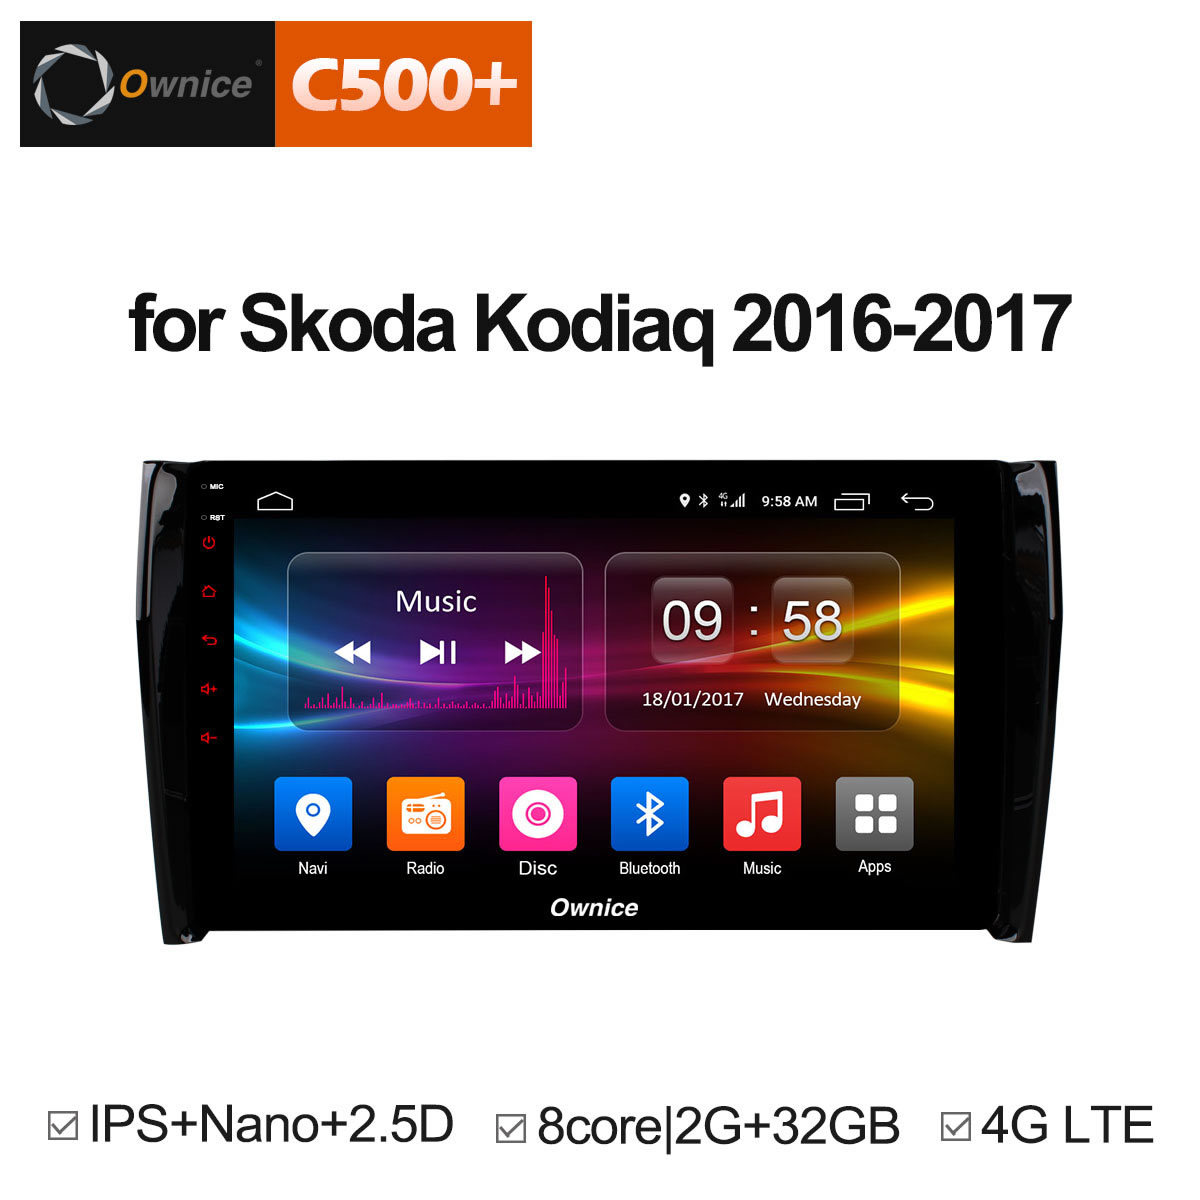 Ownice c500 + G10 10.1 Android 8.1 Octa Core 2 gb RAM voiture dvd gps Pour Skoda Kodiaq 2016 2017 Soutien 4g SIM RDS DAB + Carplay